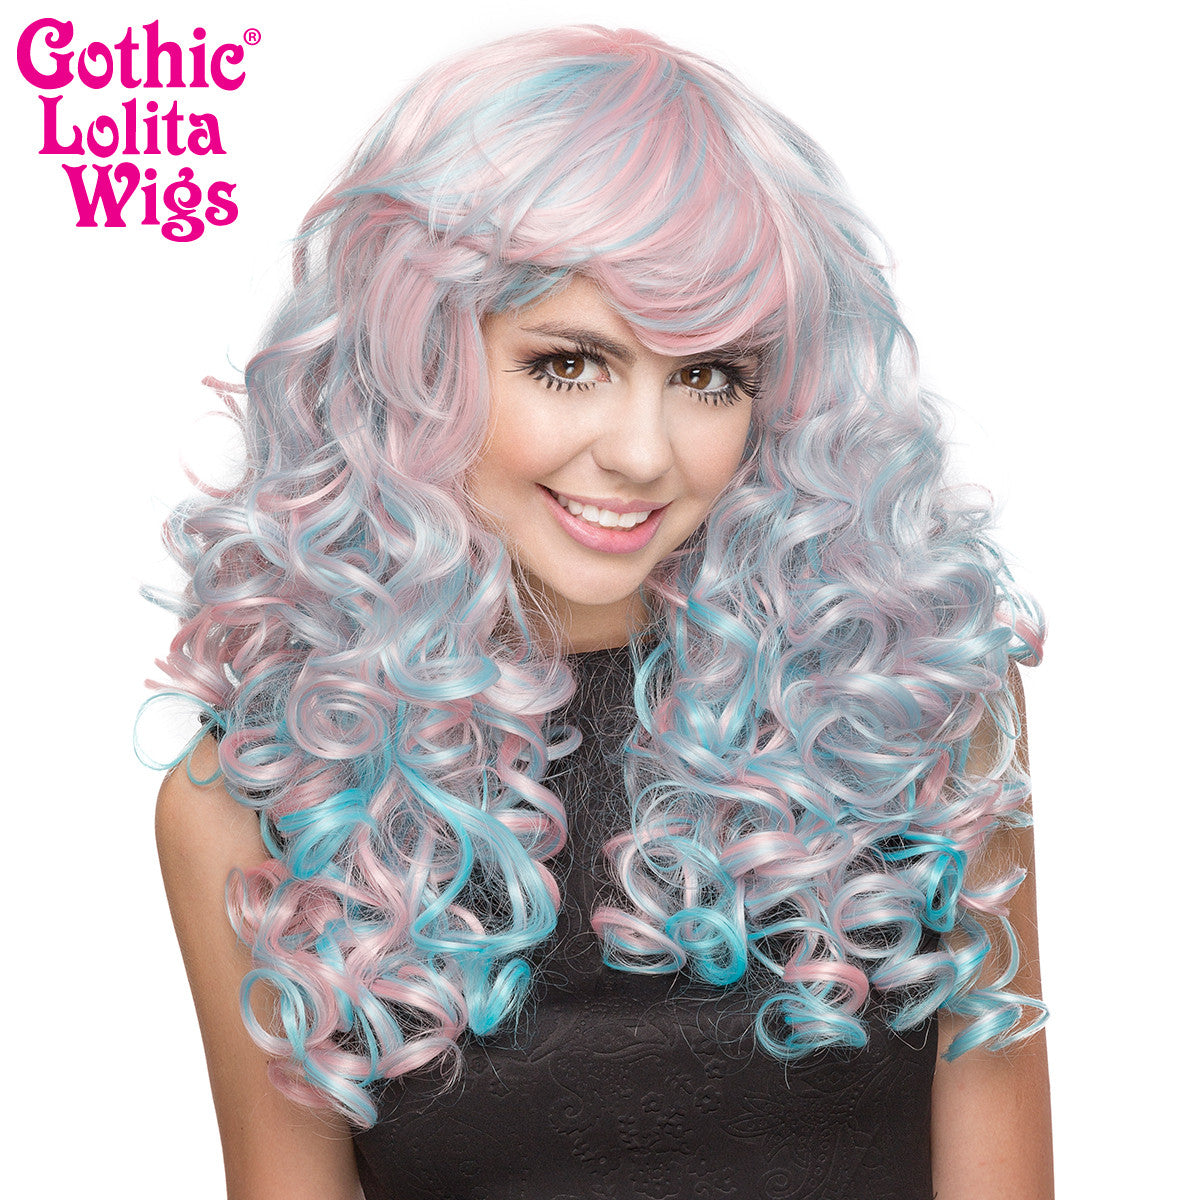 Gothic Lolita Wigs® <br> Baby Dollight™ Collection - Pink & Blue Blend -00013